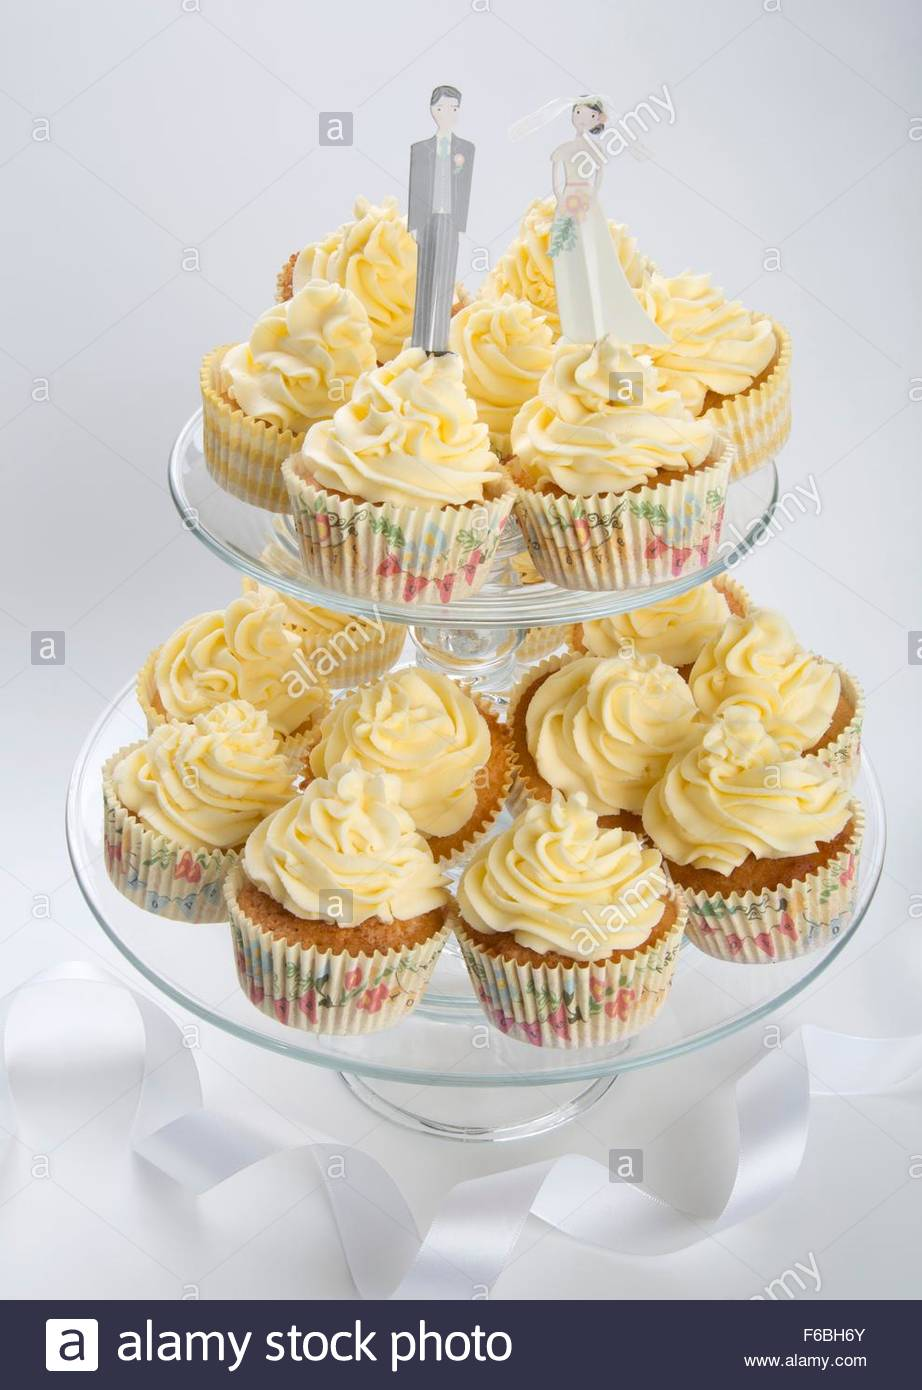 Tiered Cake Stand Stock Photos & Tiered Cake Stand Stock Images ...